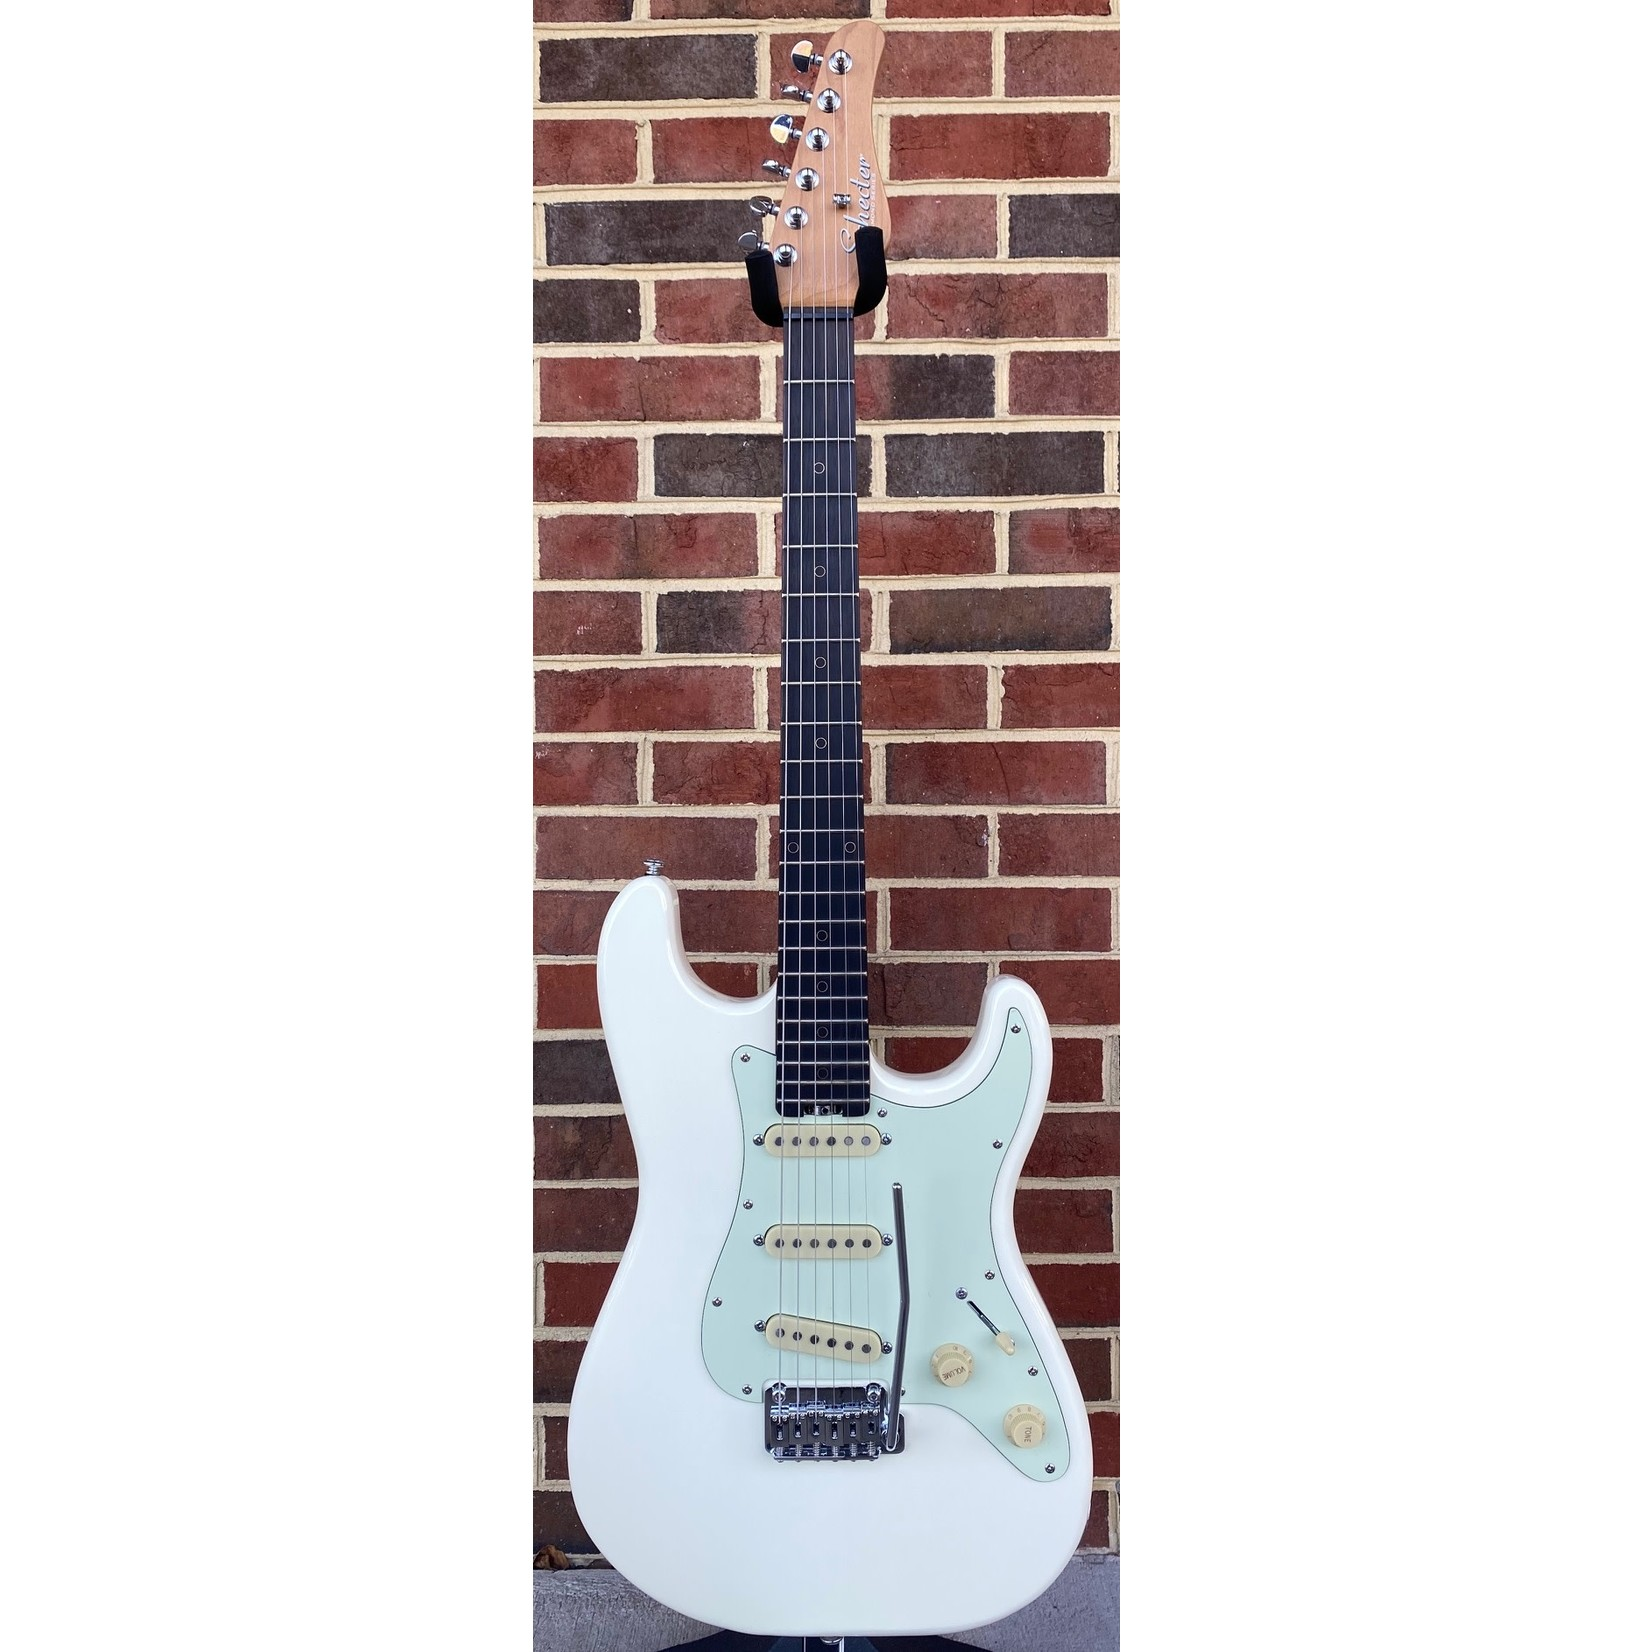 """Schecter Guitar Research Schecter Nick Johnston Traditional, Atomic Snow, Ebony FB, Locking Tuners, Roasted Maple Neck, 14"""" Radius"""